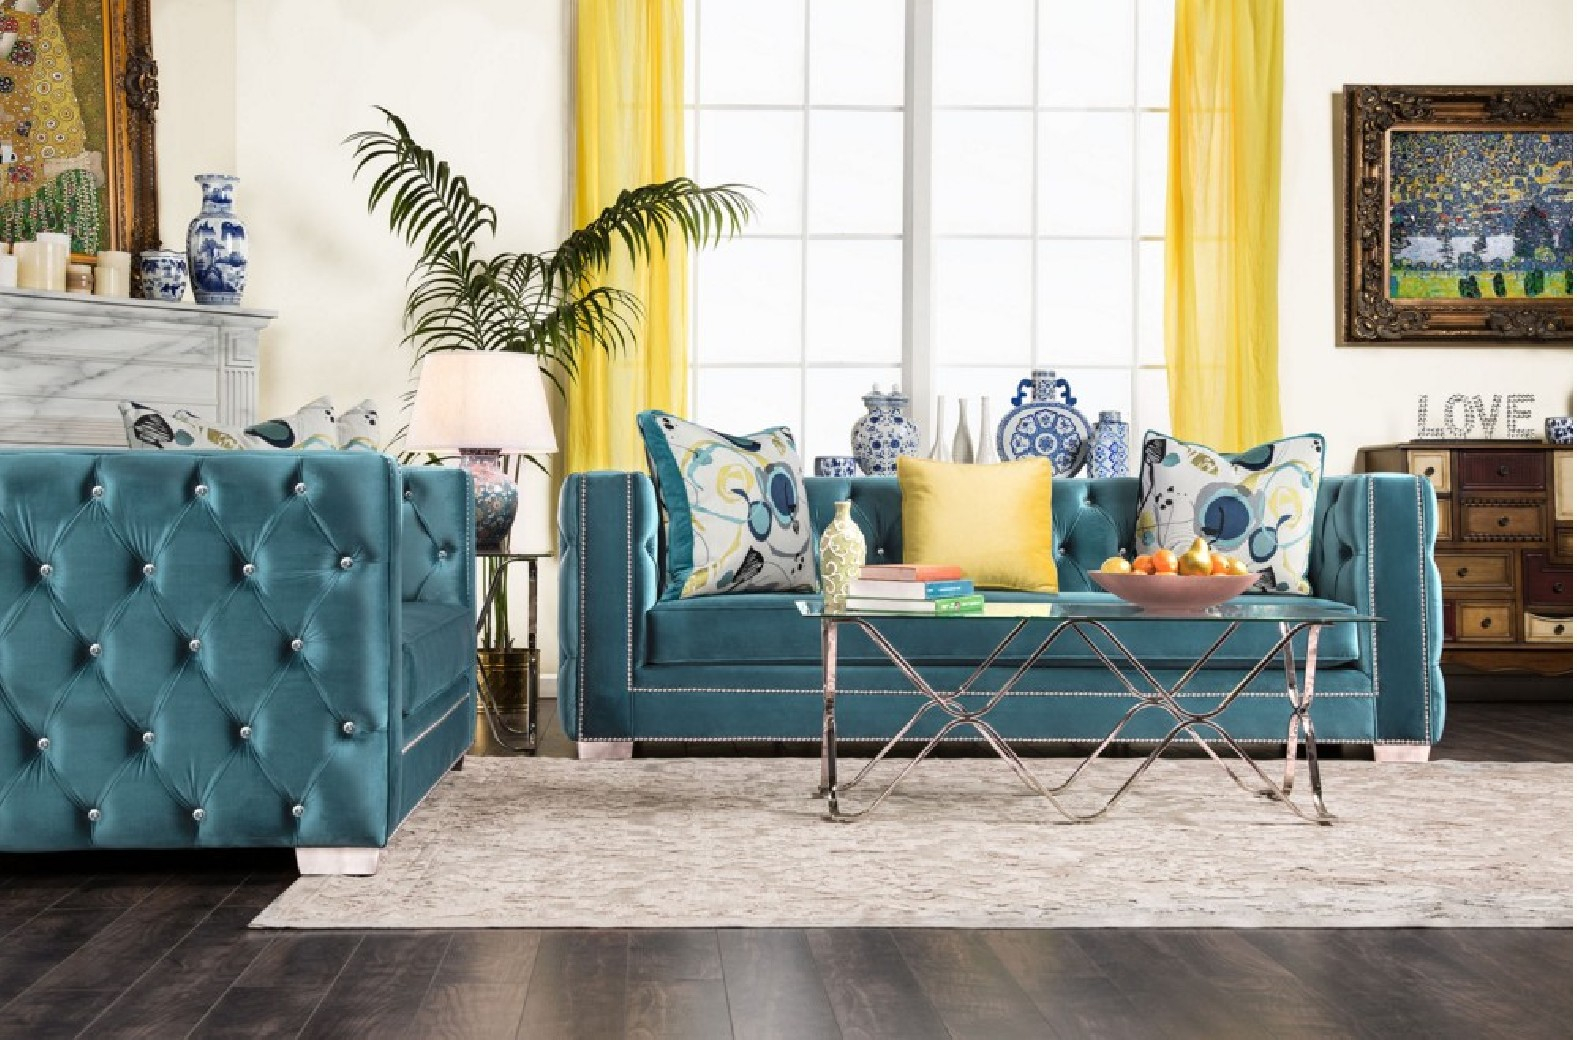 Sm2282 Furniture Of America Salvatore Living Room Set Turquoise Fabric regarding 15 Some of the Coolest Ways How to Make Turquoise Living Room Set